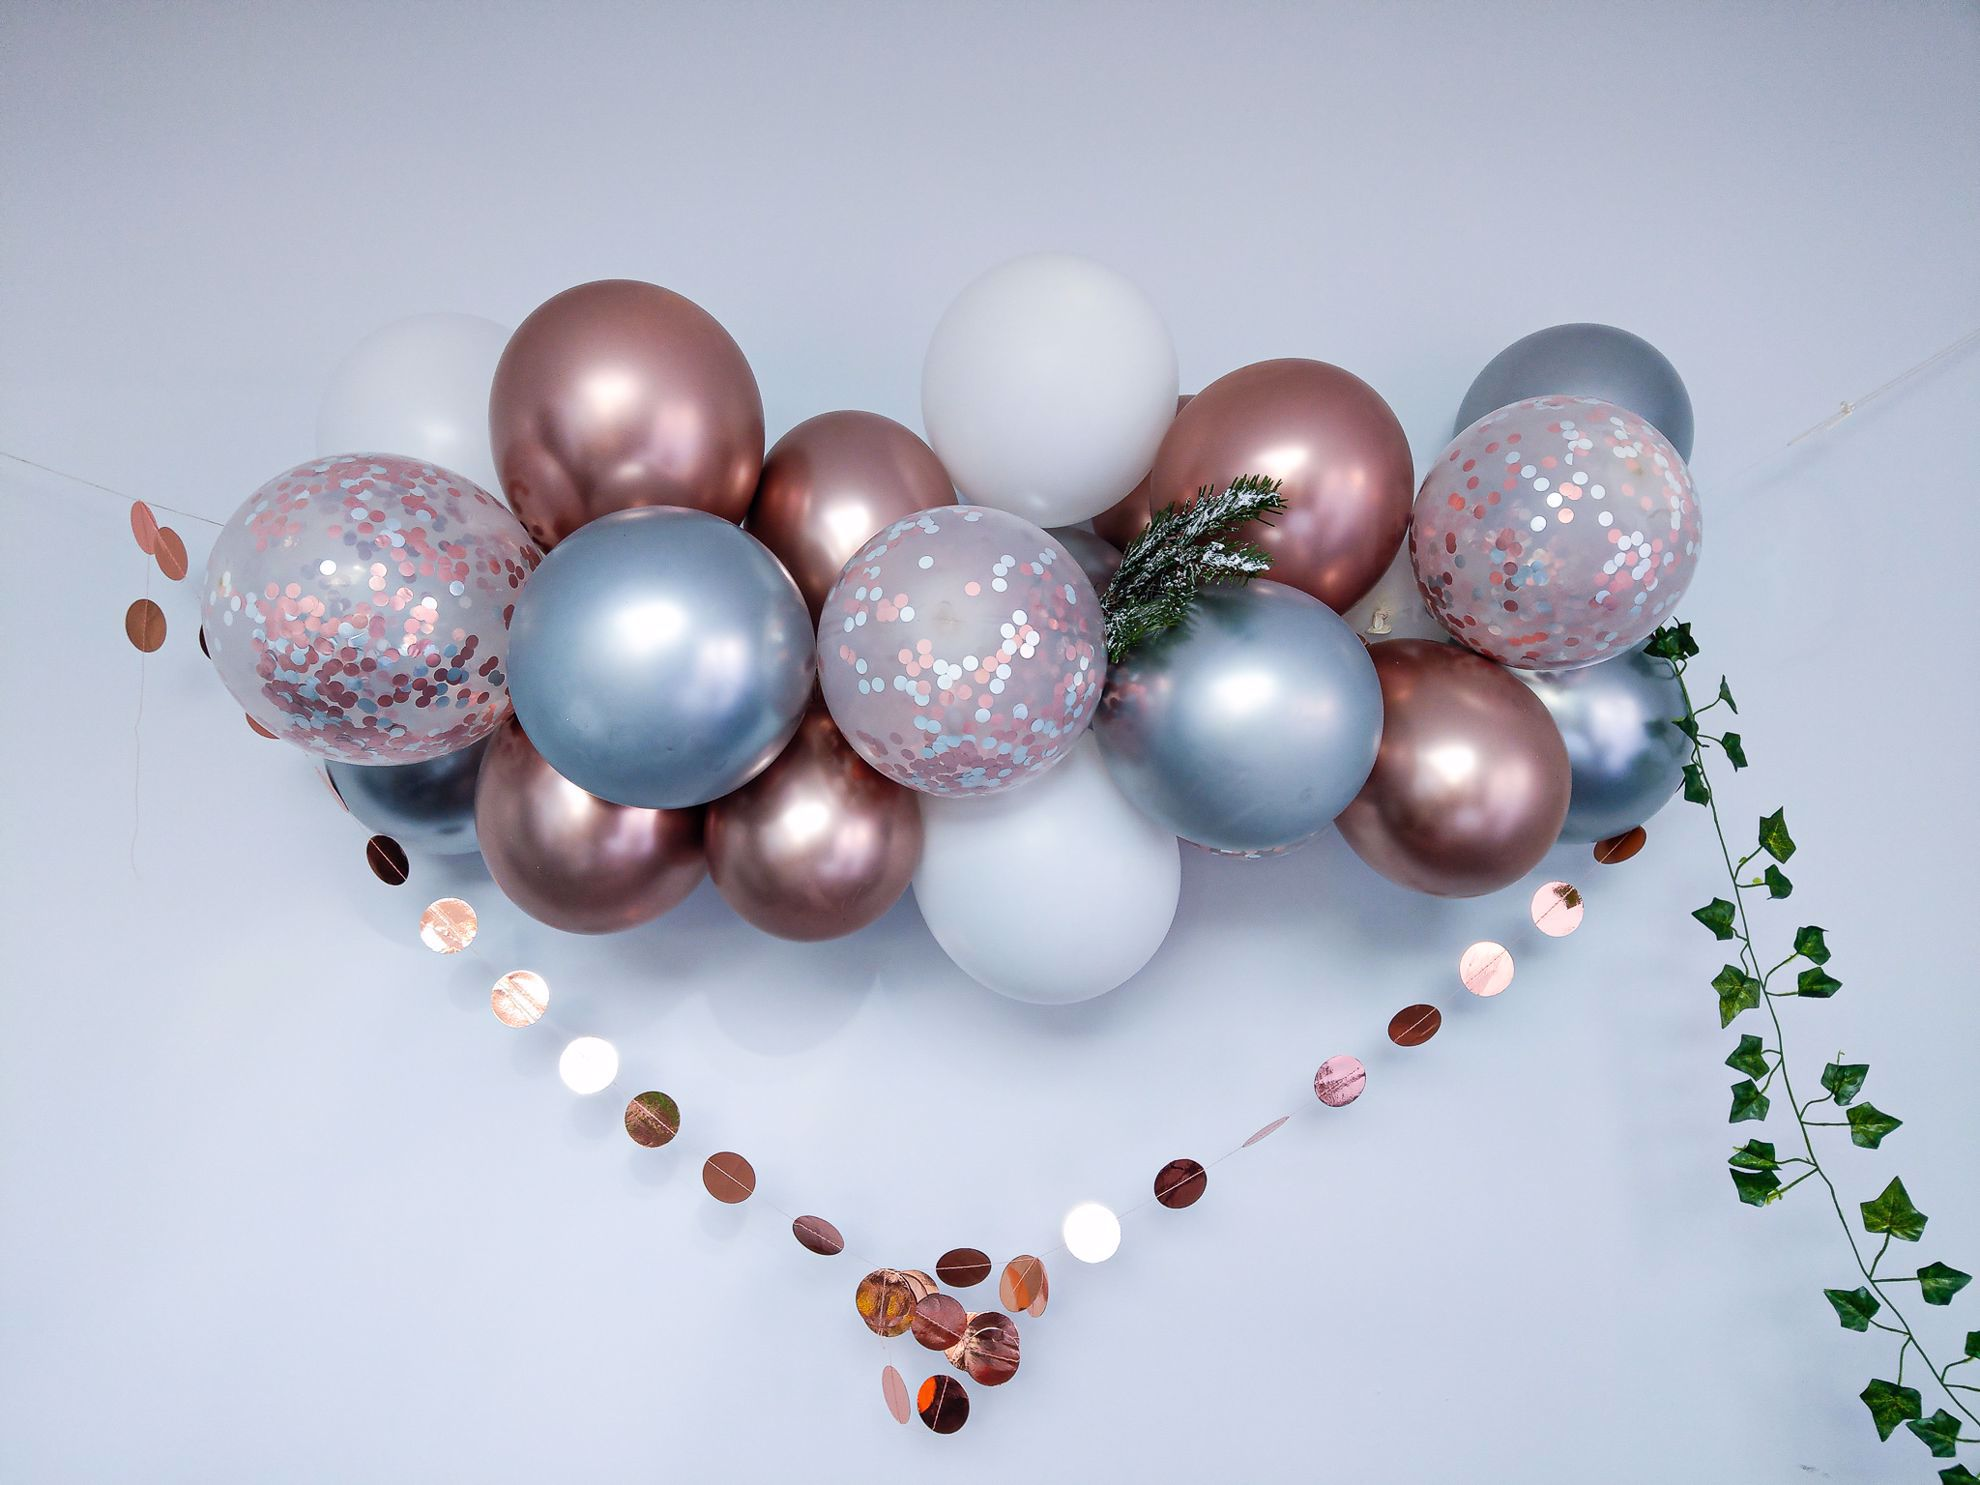 Outofmybubble Rose Gold Balloon Arch Garland Silver Chrome Confetti